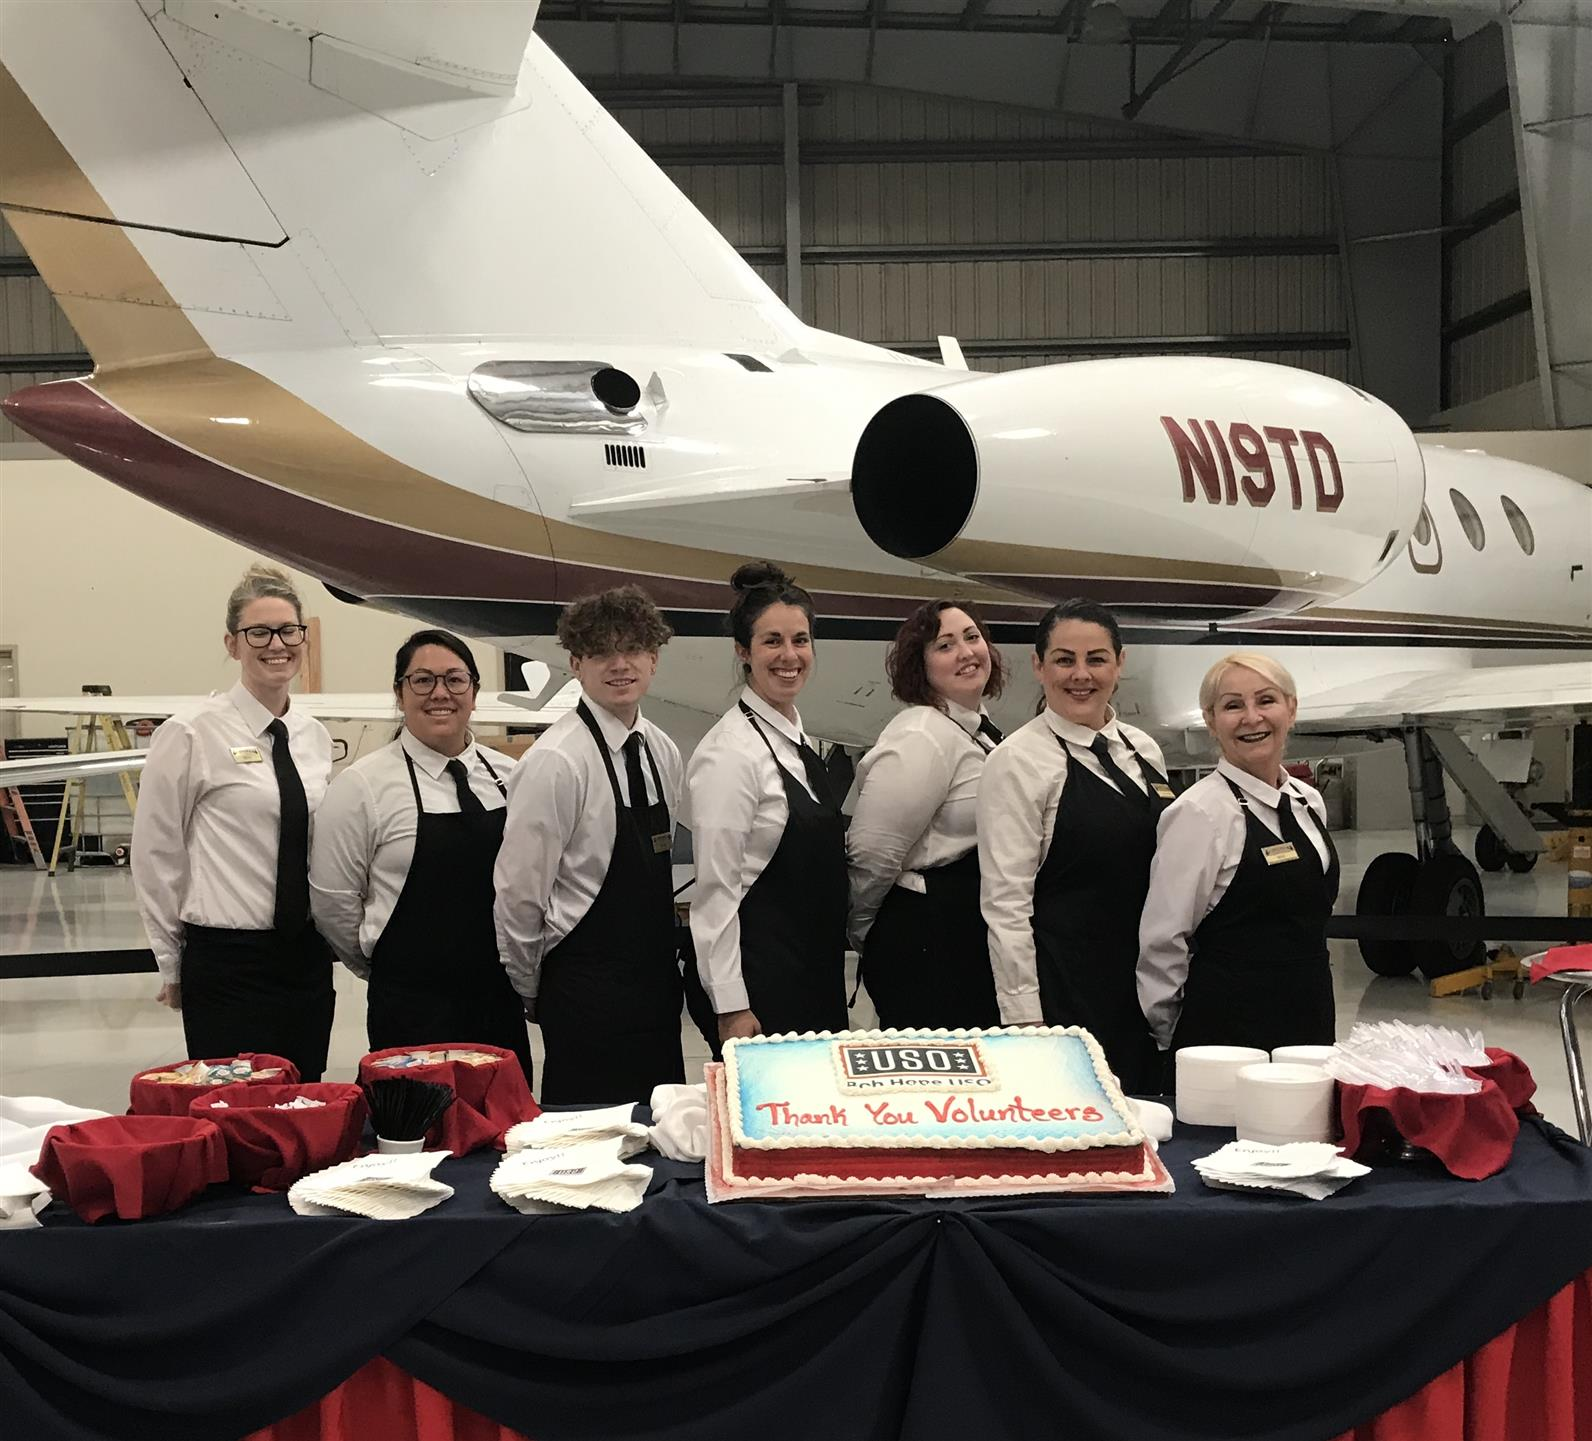 a group of people smiling at the camera behind a cake